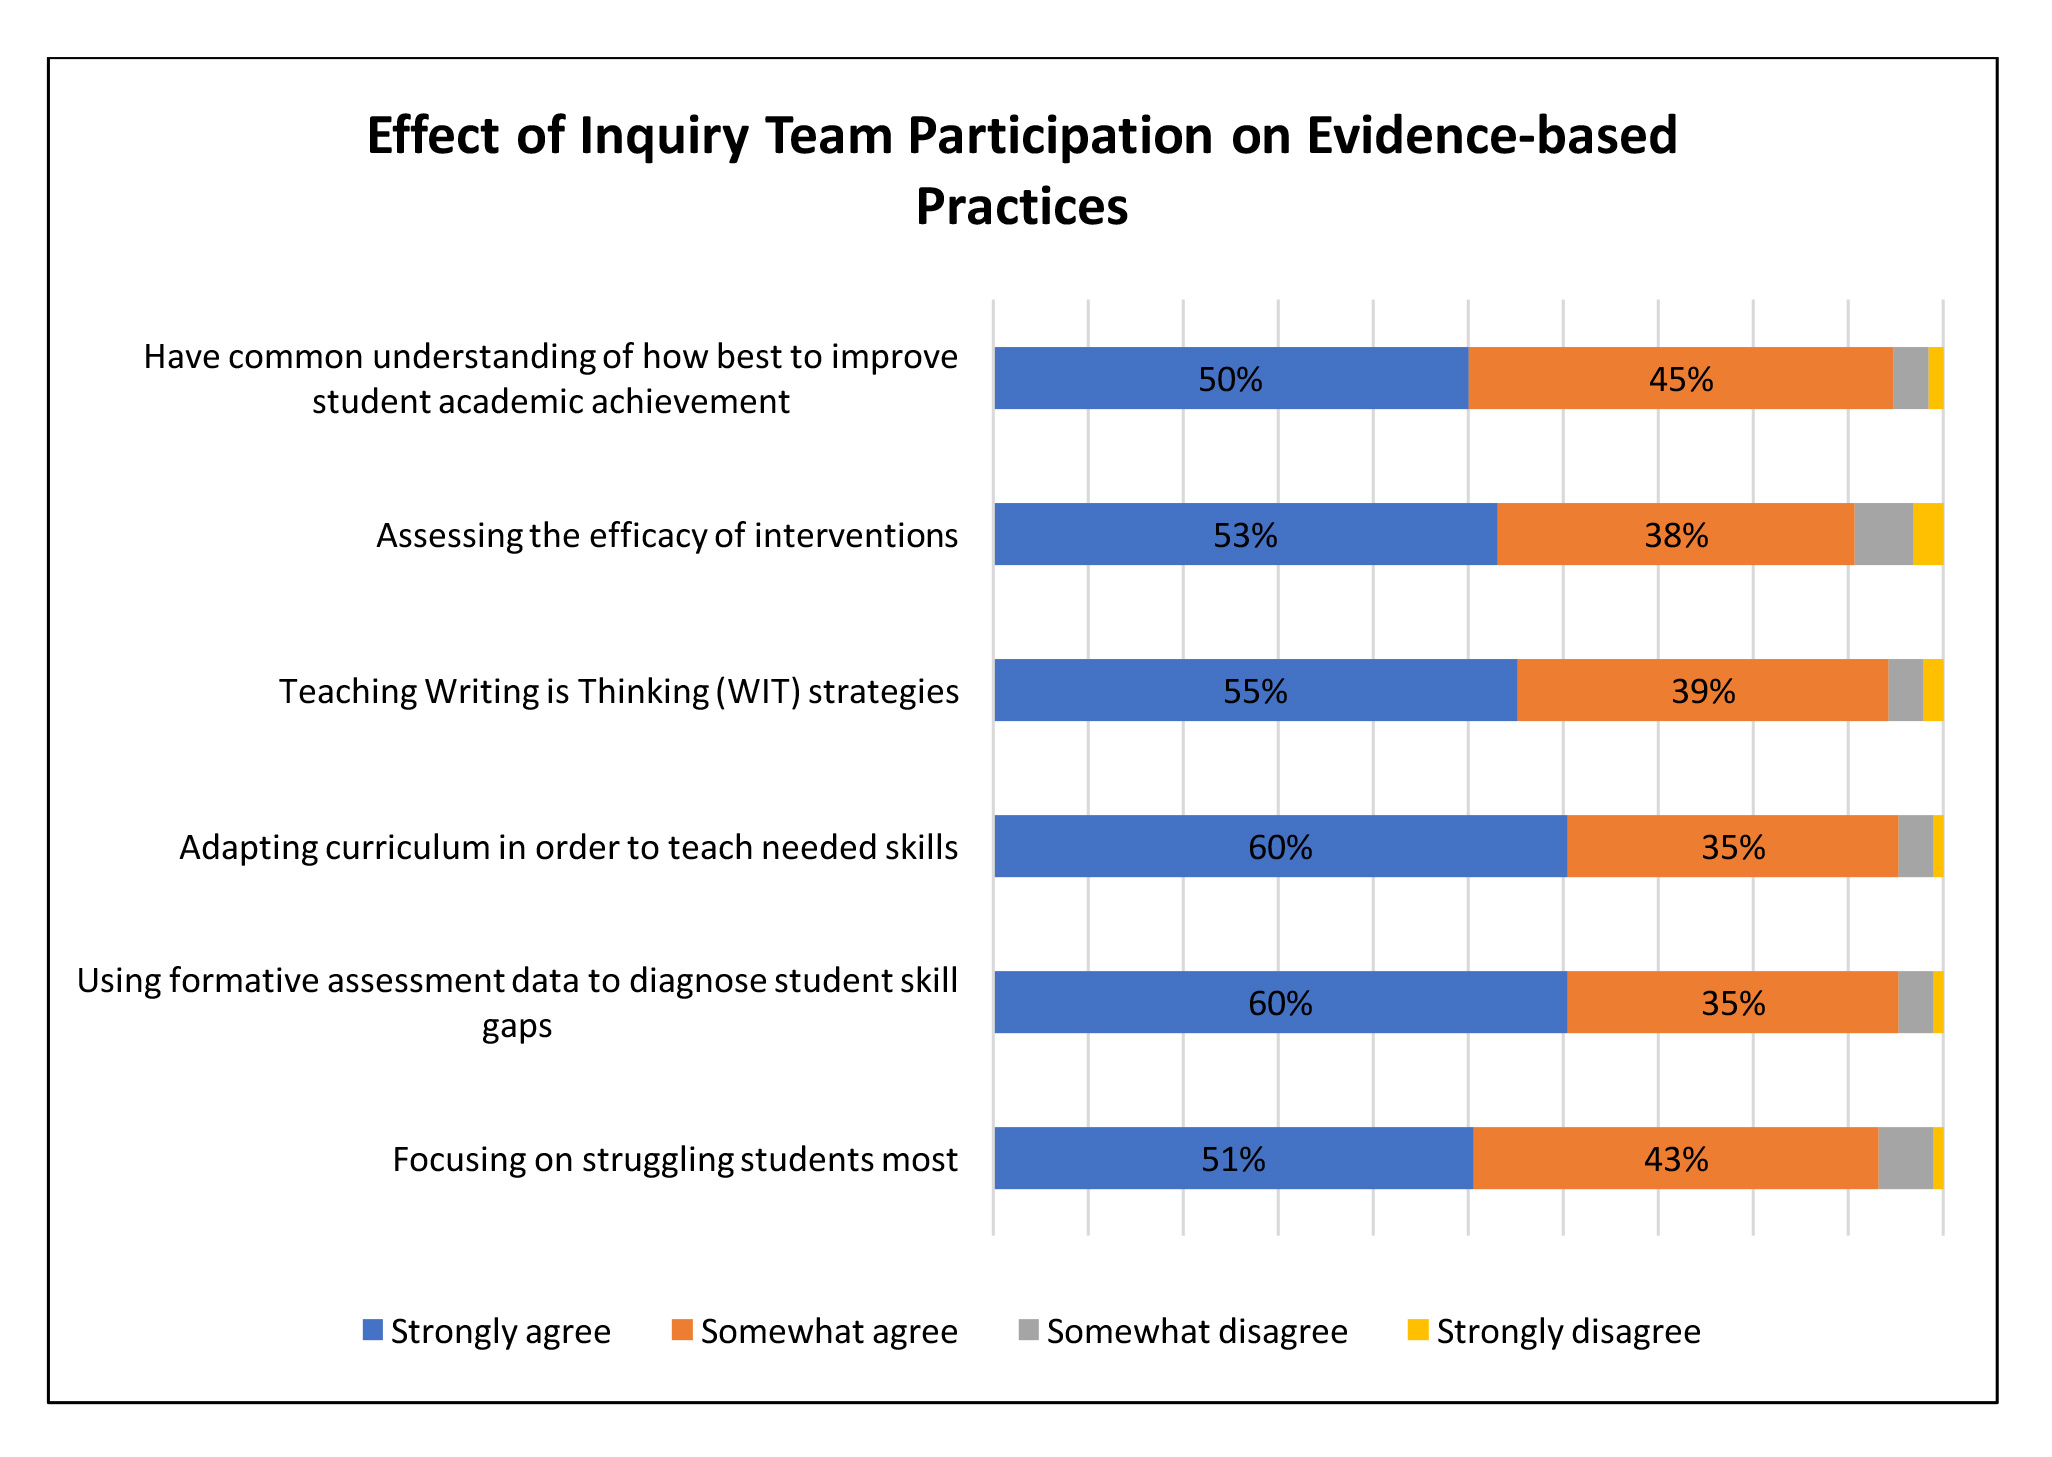 Effect of Inquiry Participation on Improvement of Evidence-based Practices